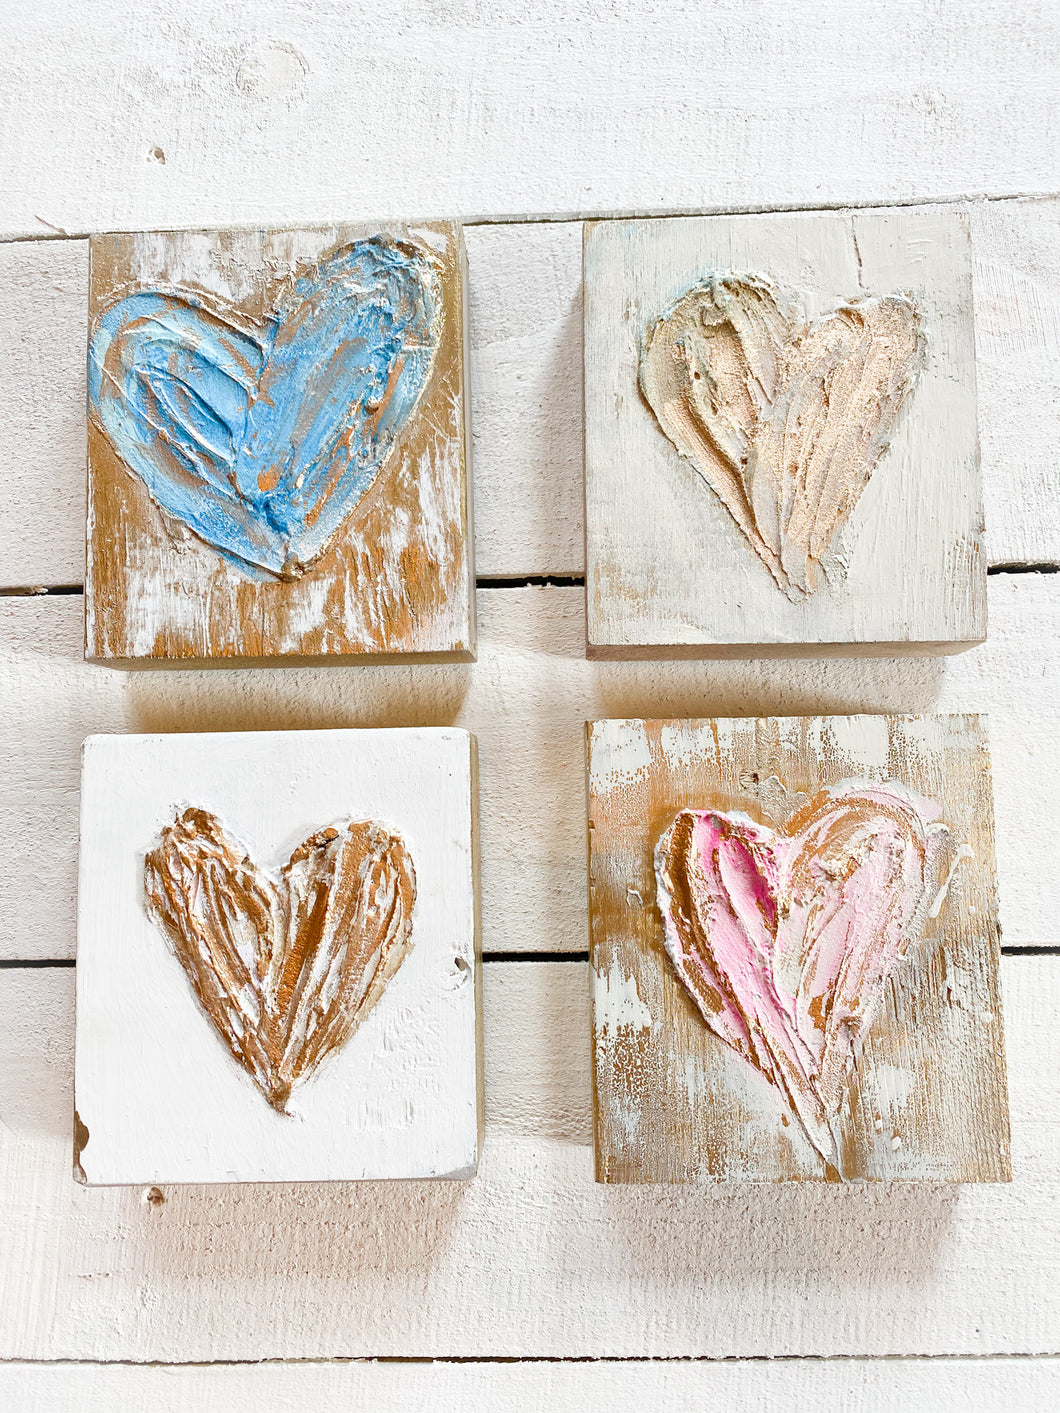 Painted Heart on Wood Block (6 x 6 x 4)